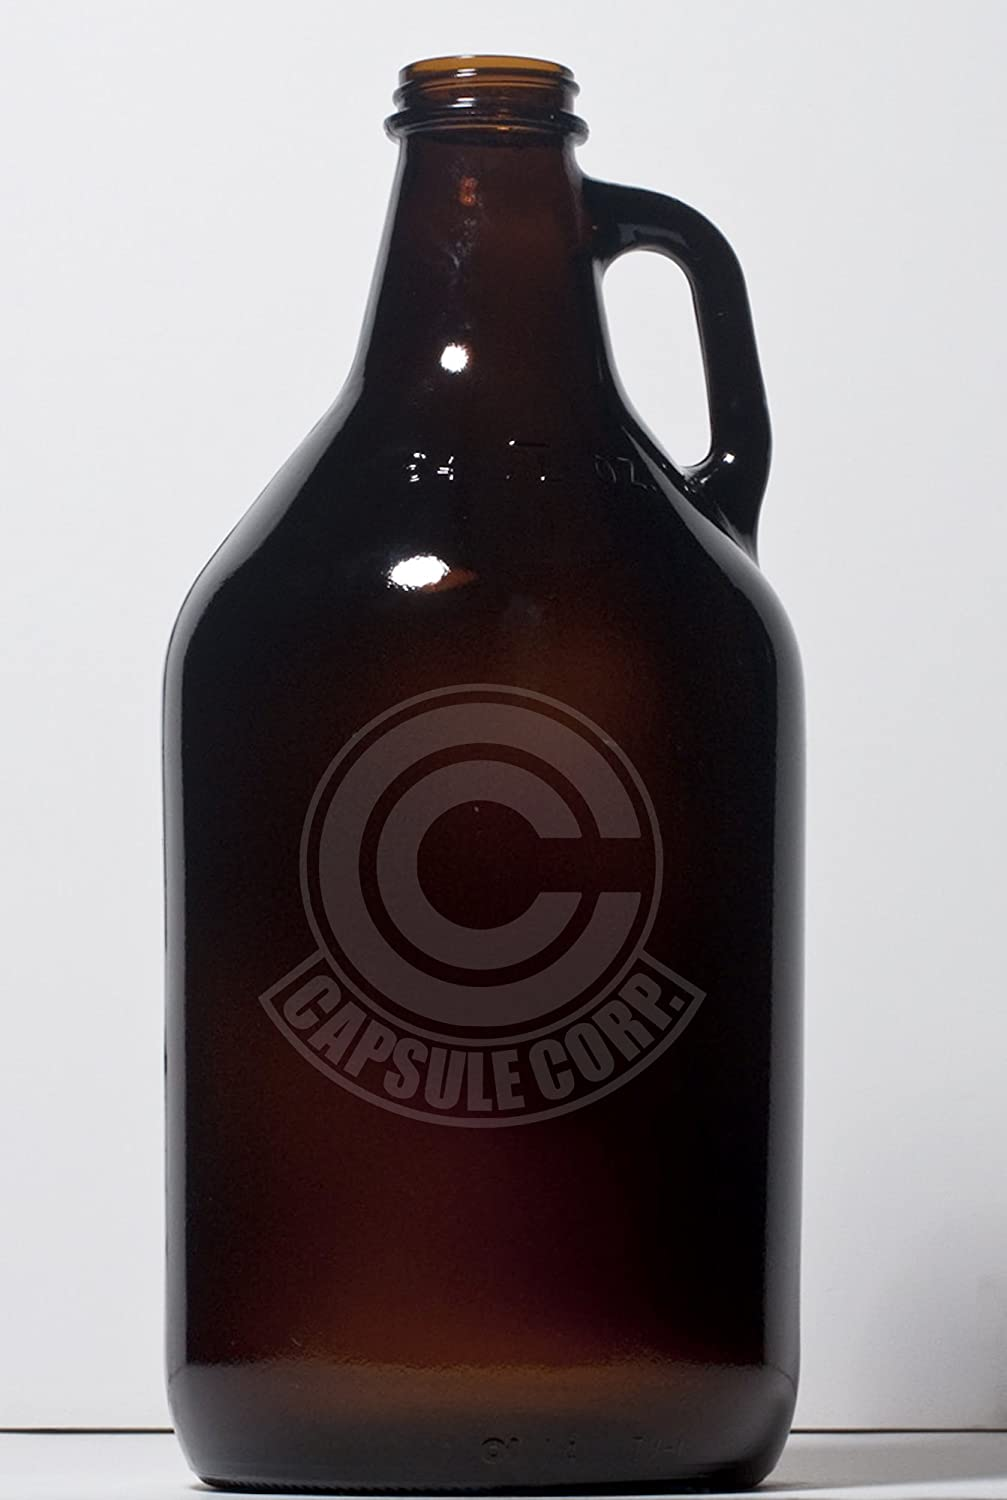 Capsule Corp - Dragonball Z - 64 Ounce Glass Beer Growler pallypants